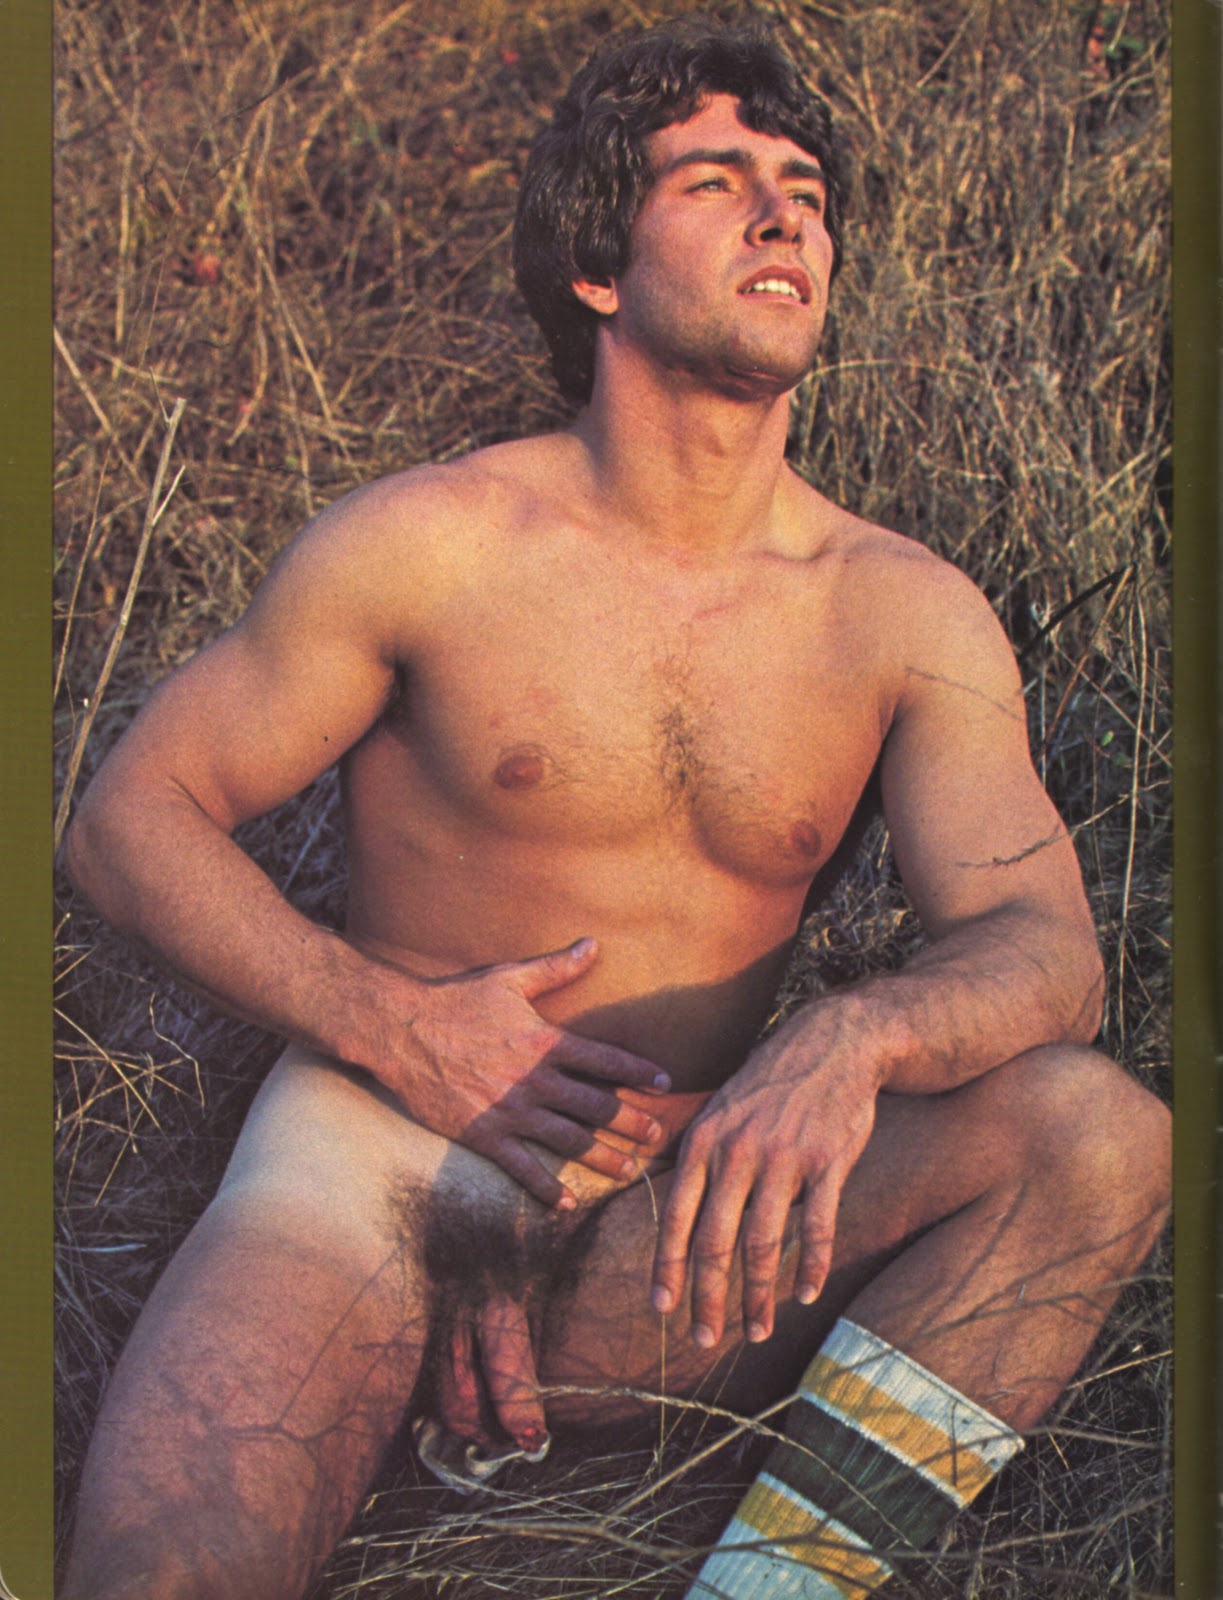 from Cameron gay 70s porn